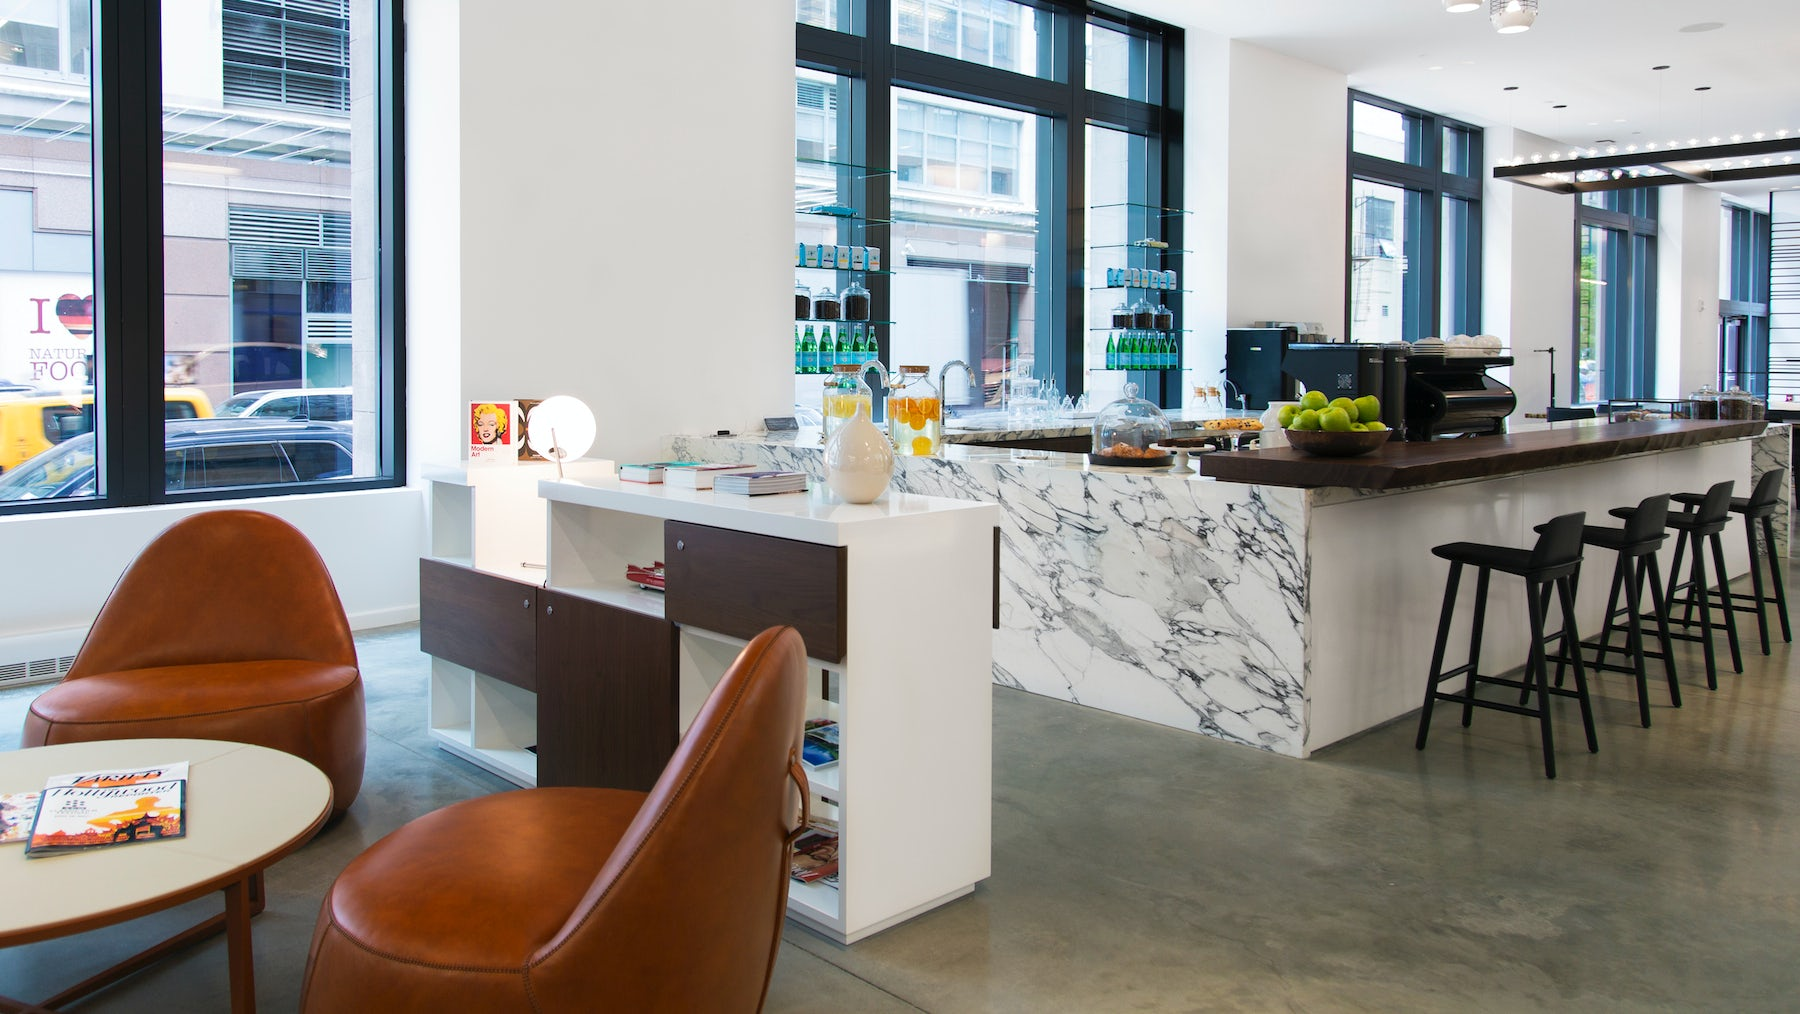 'Cadillac House', the car brand's retail space, features a coffee shop and art gallery | Source: Gensler